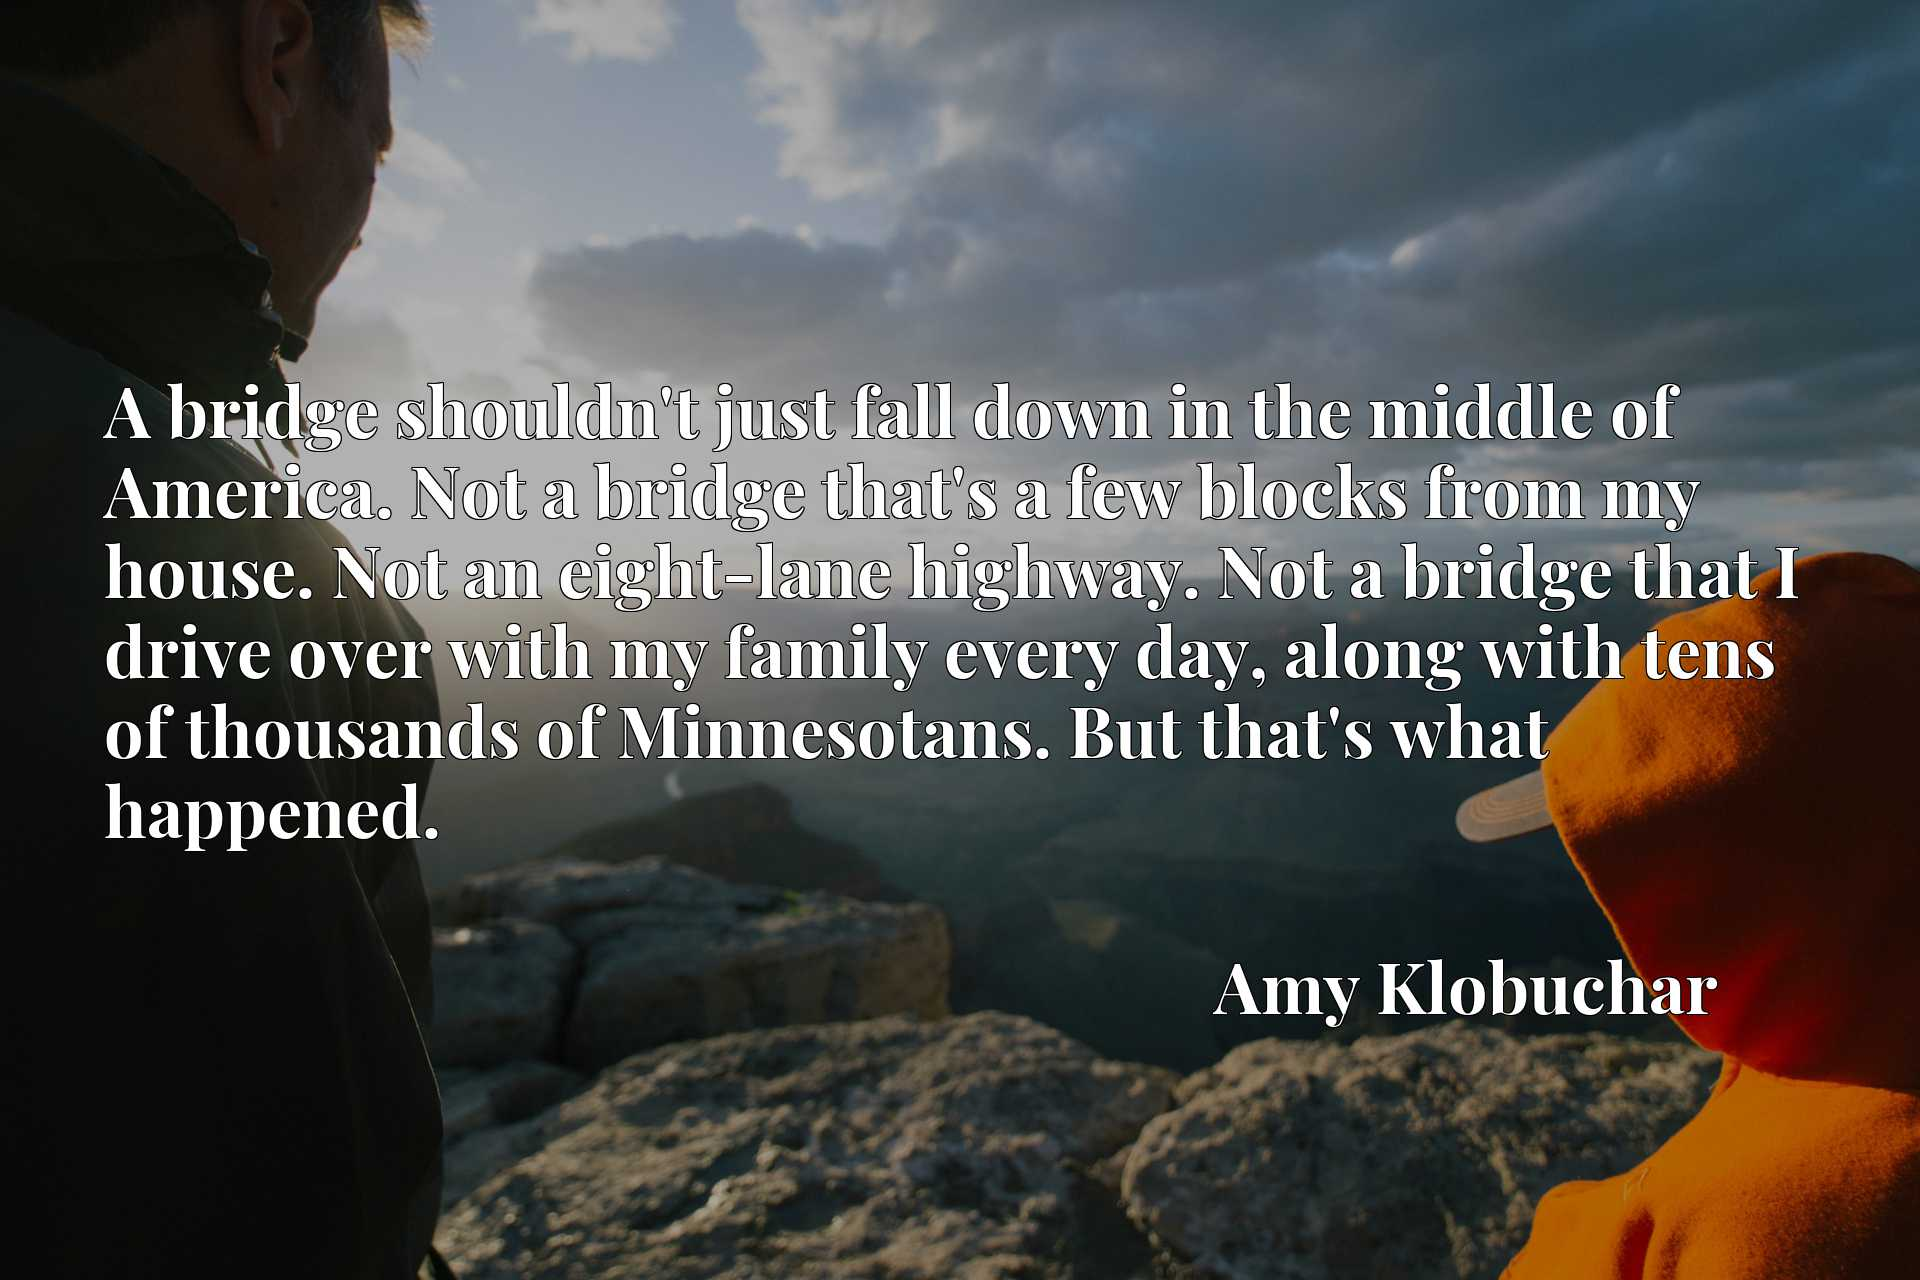 A bridge shouldn't just fall down in the middle of America. Not a bridge that's a few blocks from my house. Not an eight-lane highway. Not a bridge that I drive over with my family every day, along with tens of thousands of Minnesotans. But that's what happened.